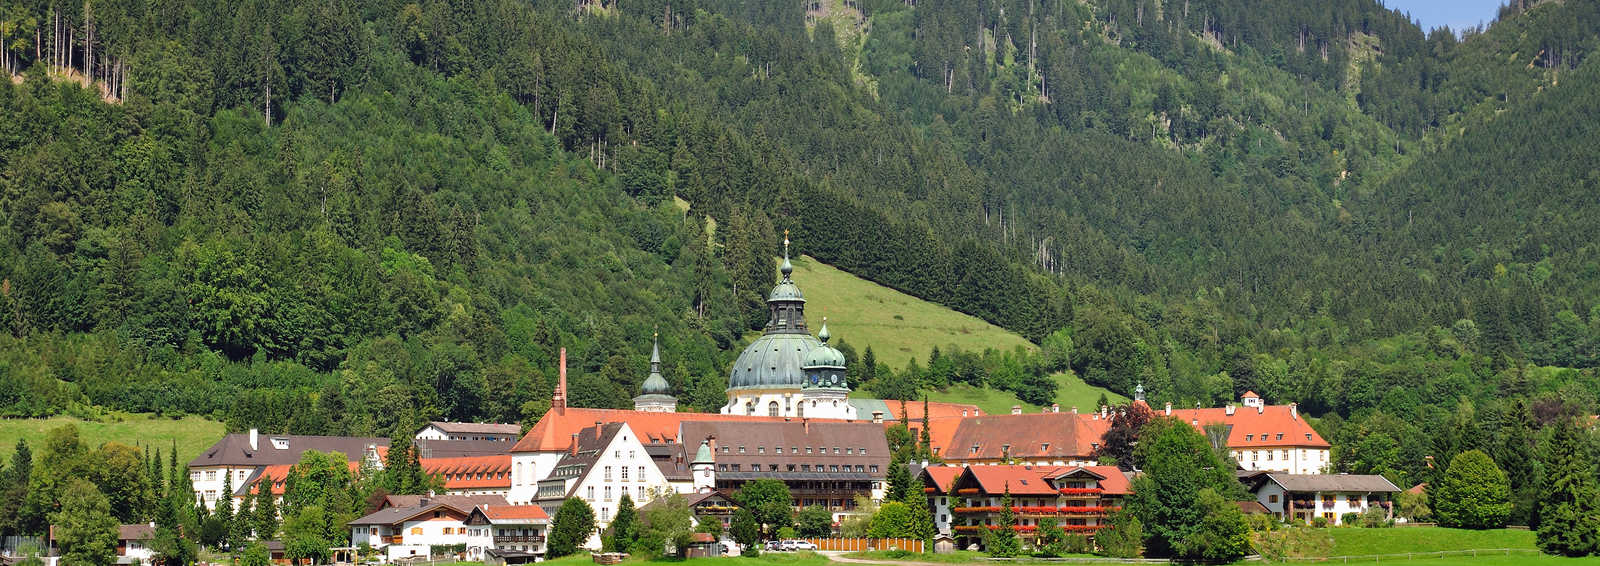 Ettal Monastery, Upper Bavaria, Germany